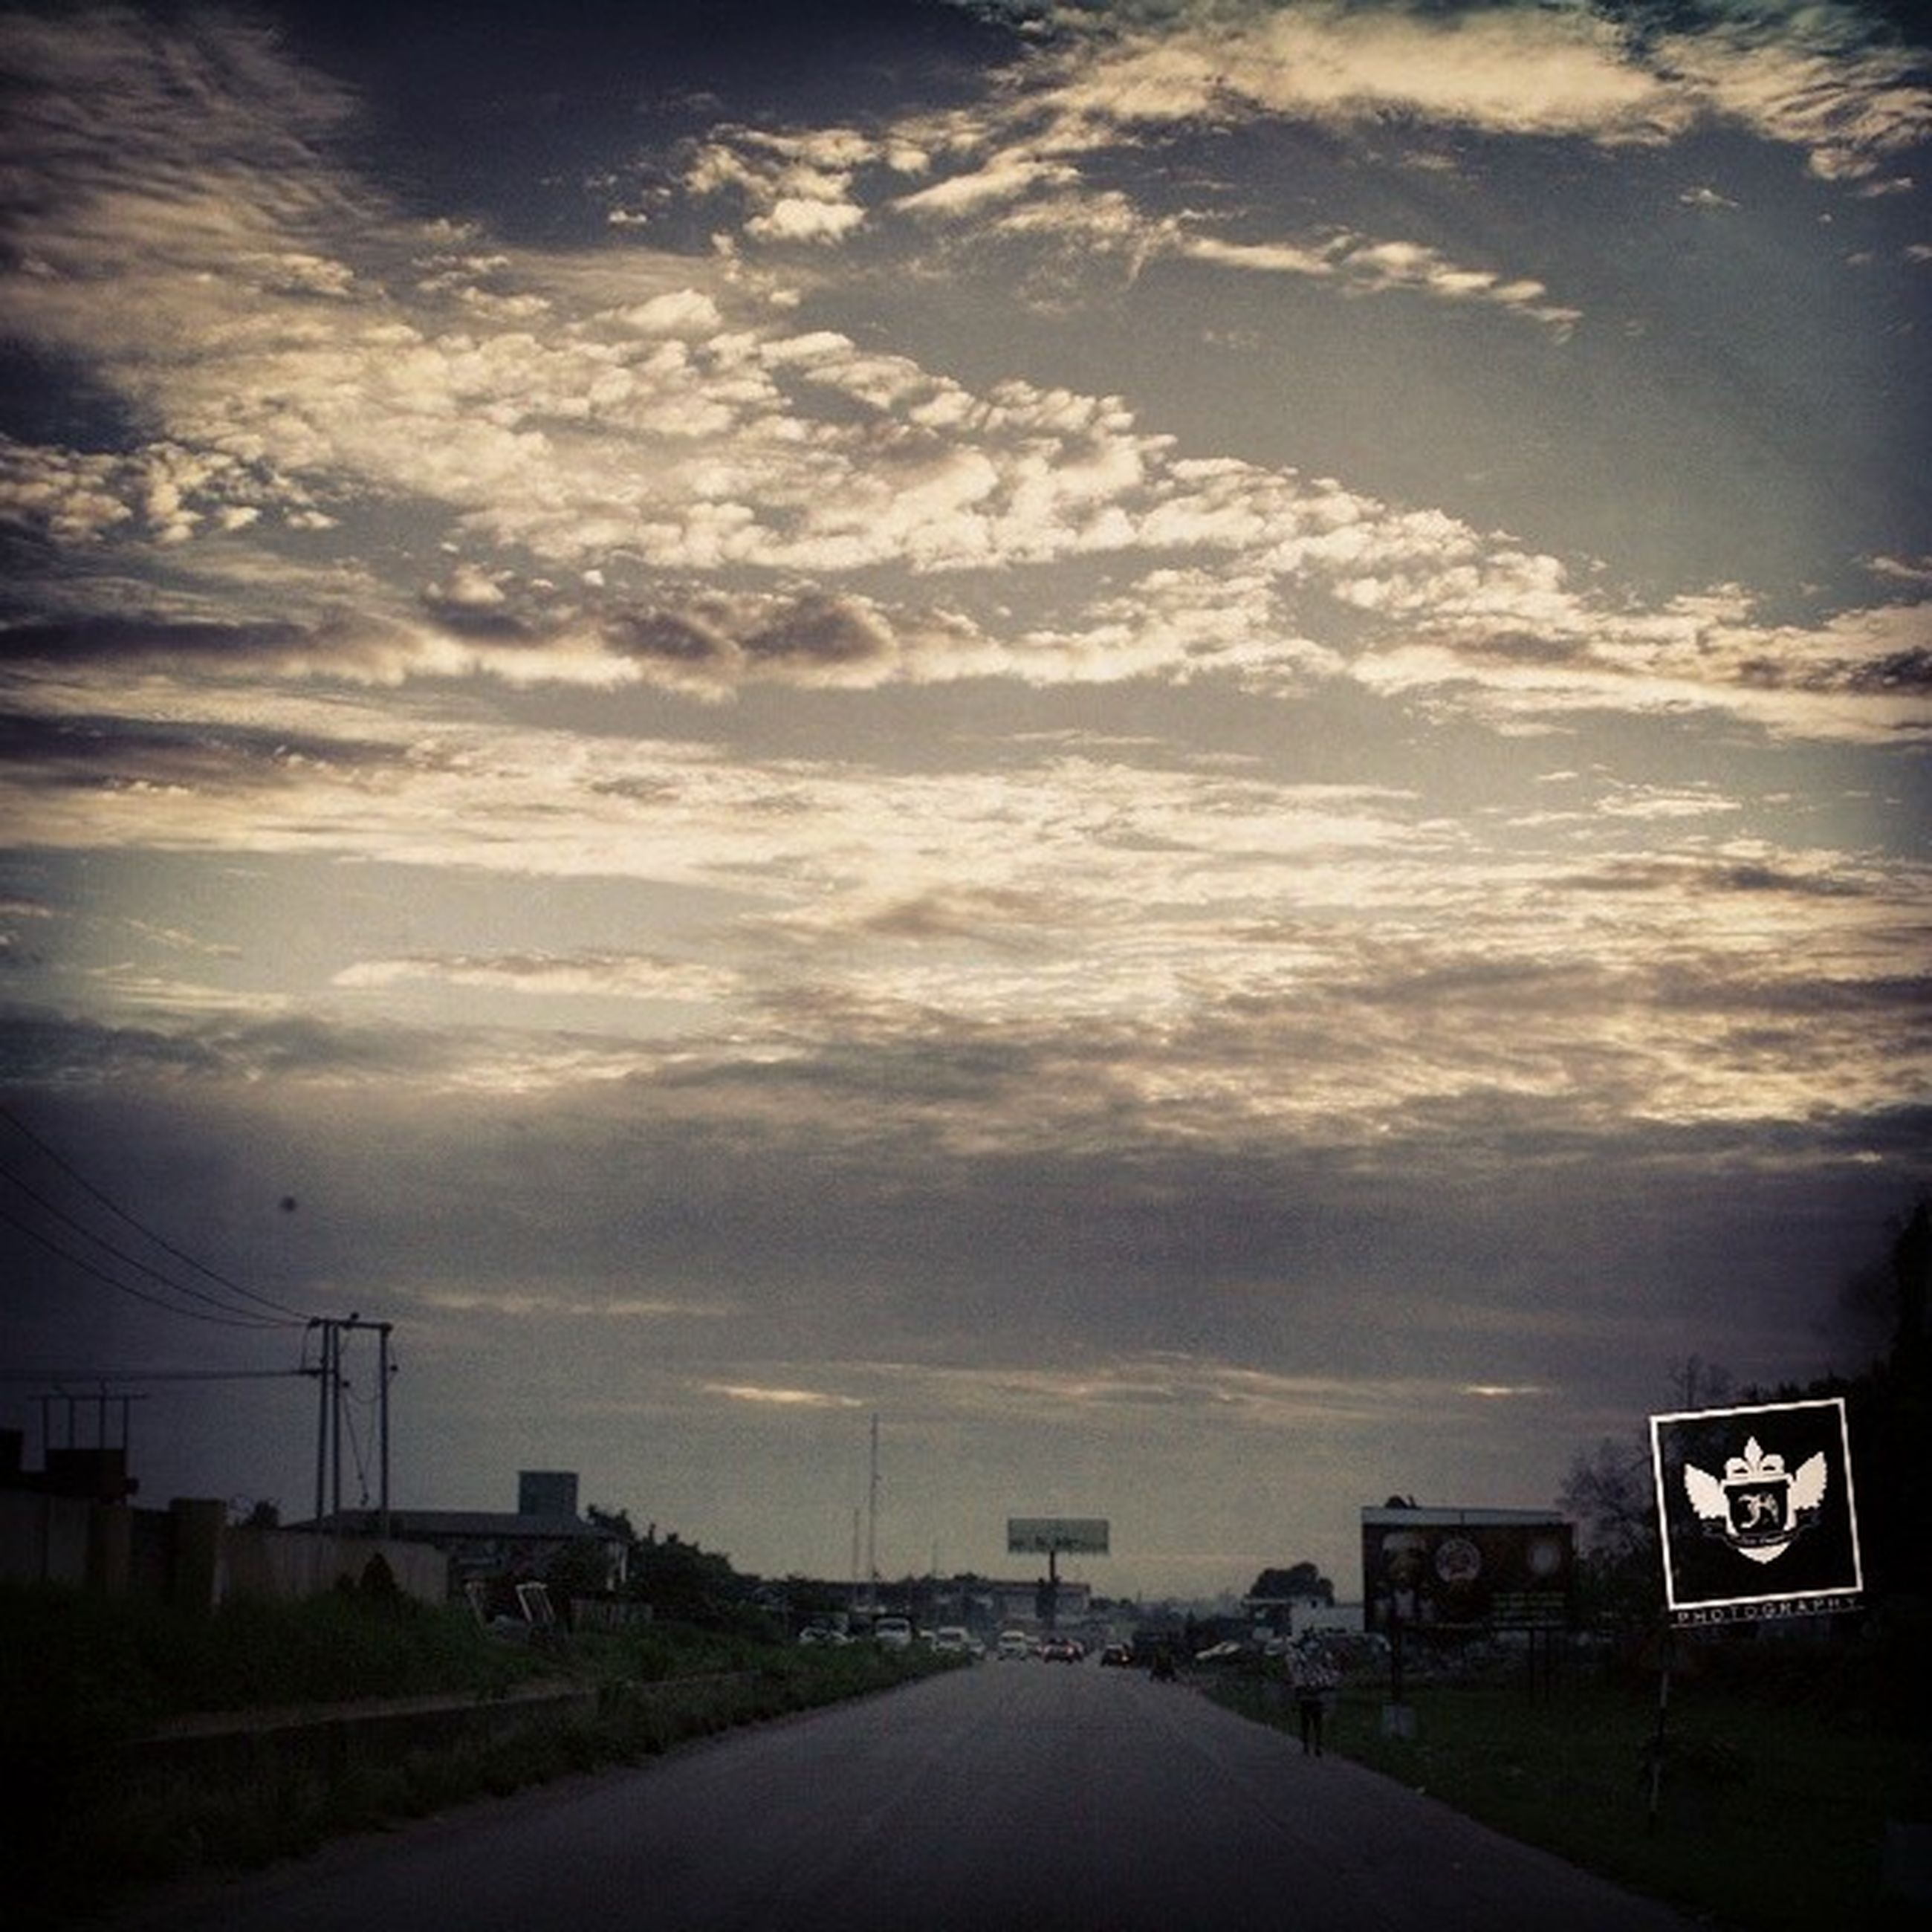 transportation, the way forward, road, sky, diminishing perspective, cloud - sky, vanishing point, street, road marking, car, sunset, country road, cloudy, land vehicle, cloud, empty road, empty, outdoors, dusk, nature